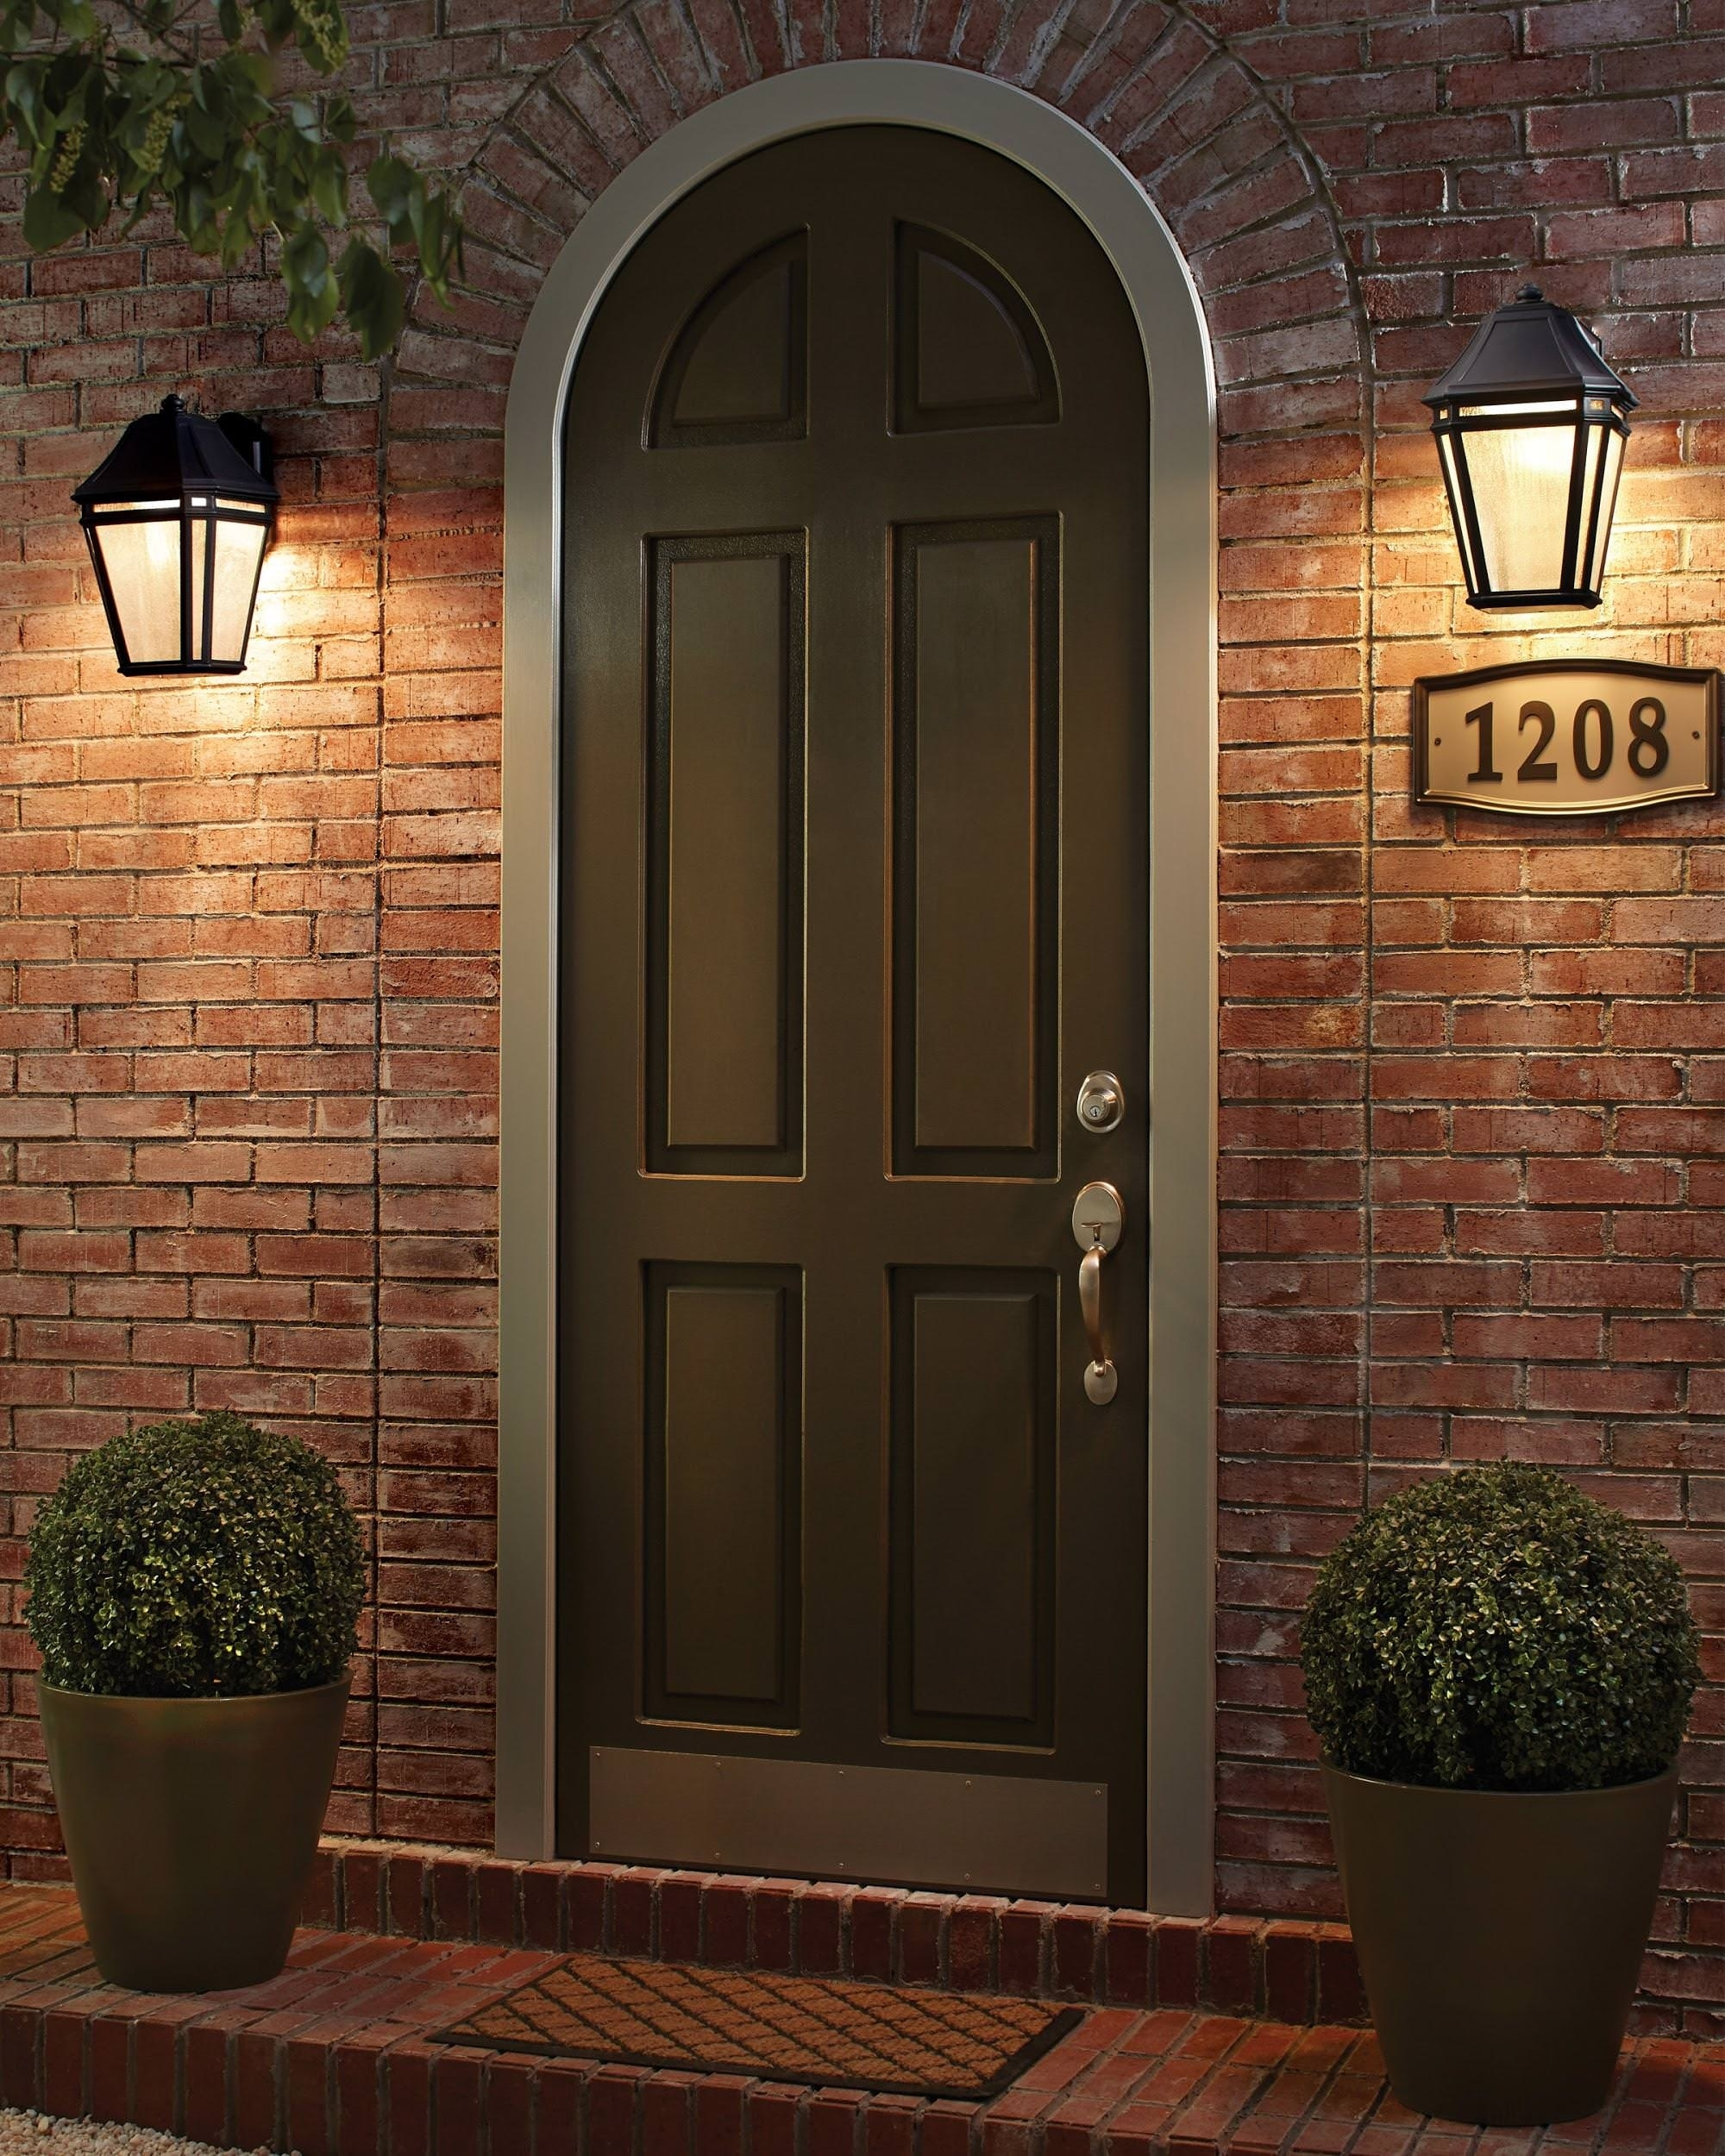 15 Different Outdoor Lighting Ideas For Your Home (All Types) For Outdoor Garage Lanterns (View 6 of 20)